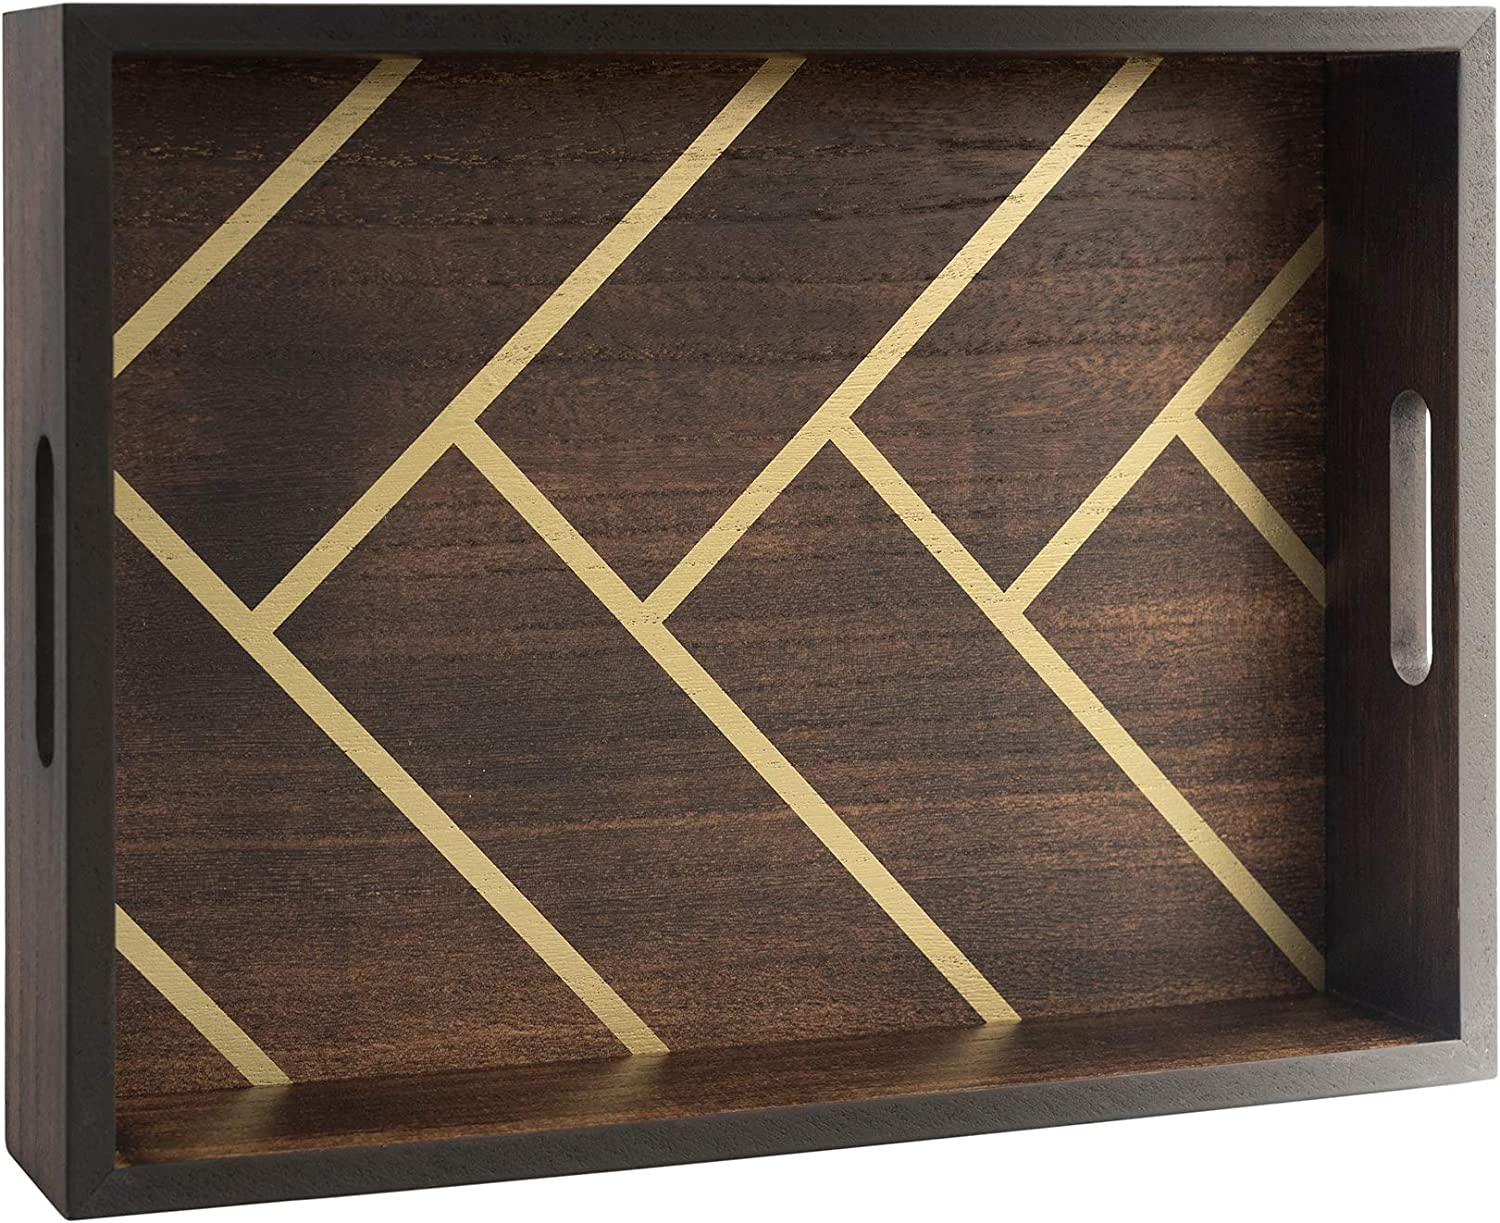 Wood Serving Tray with Handles for Coffee Table & Ottoman - Herringbone Design - 16.5 X 12 - for Breakfast, Home Accent Decor